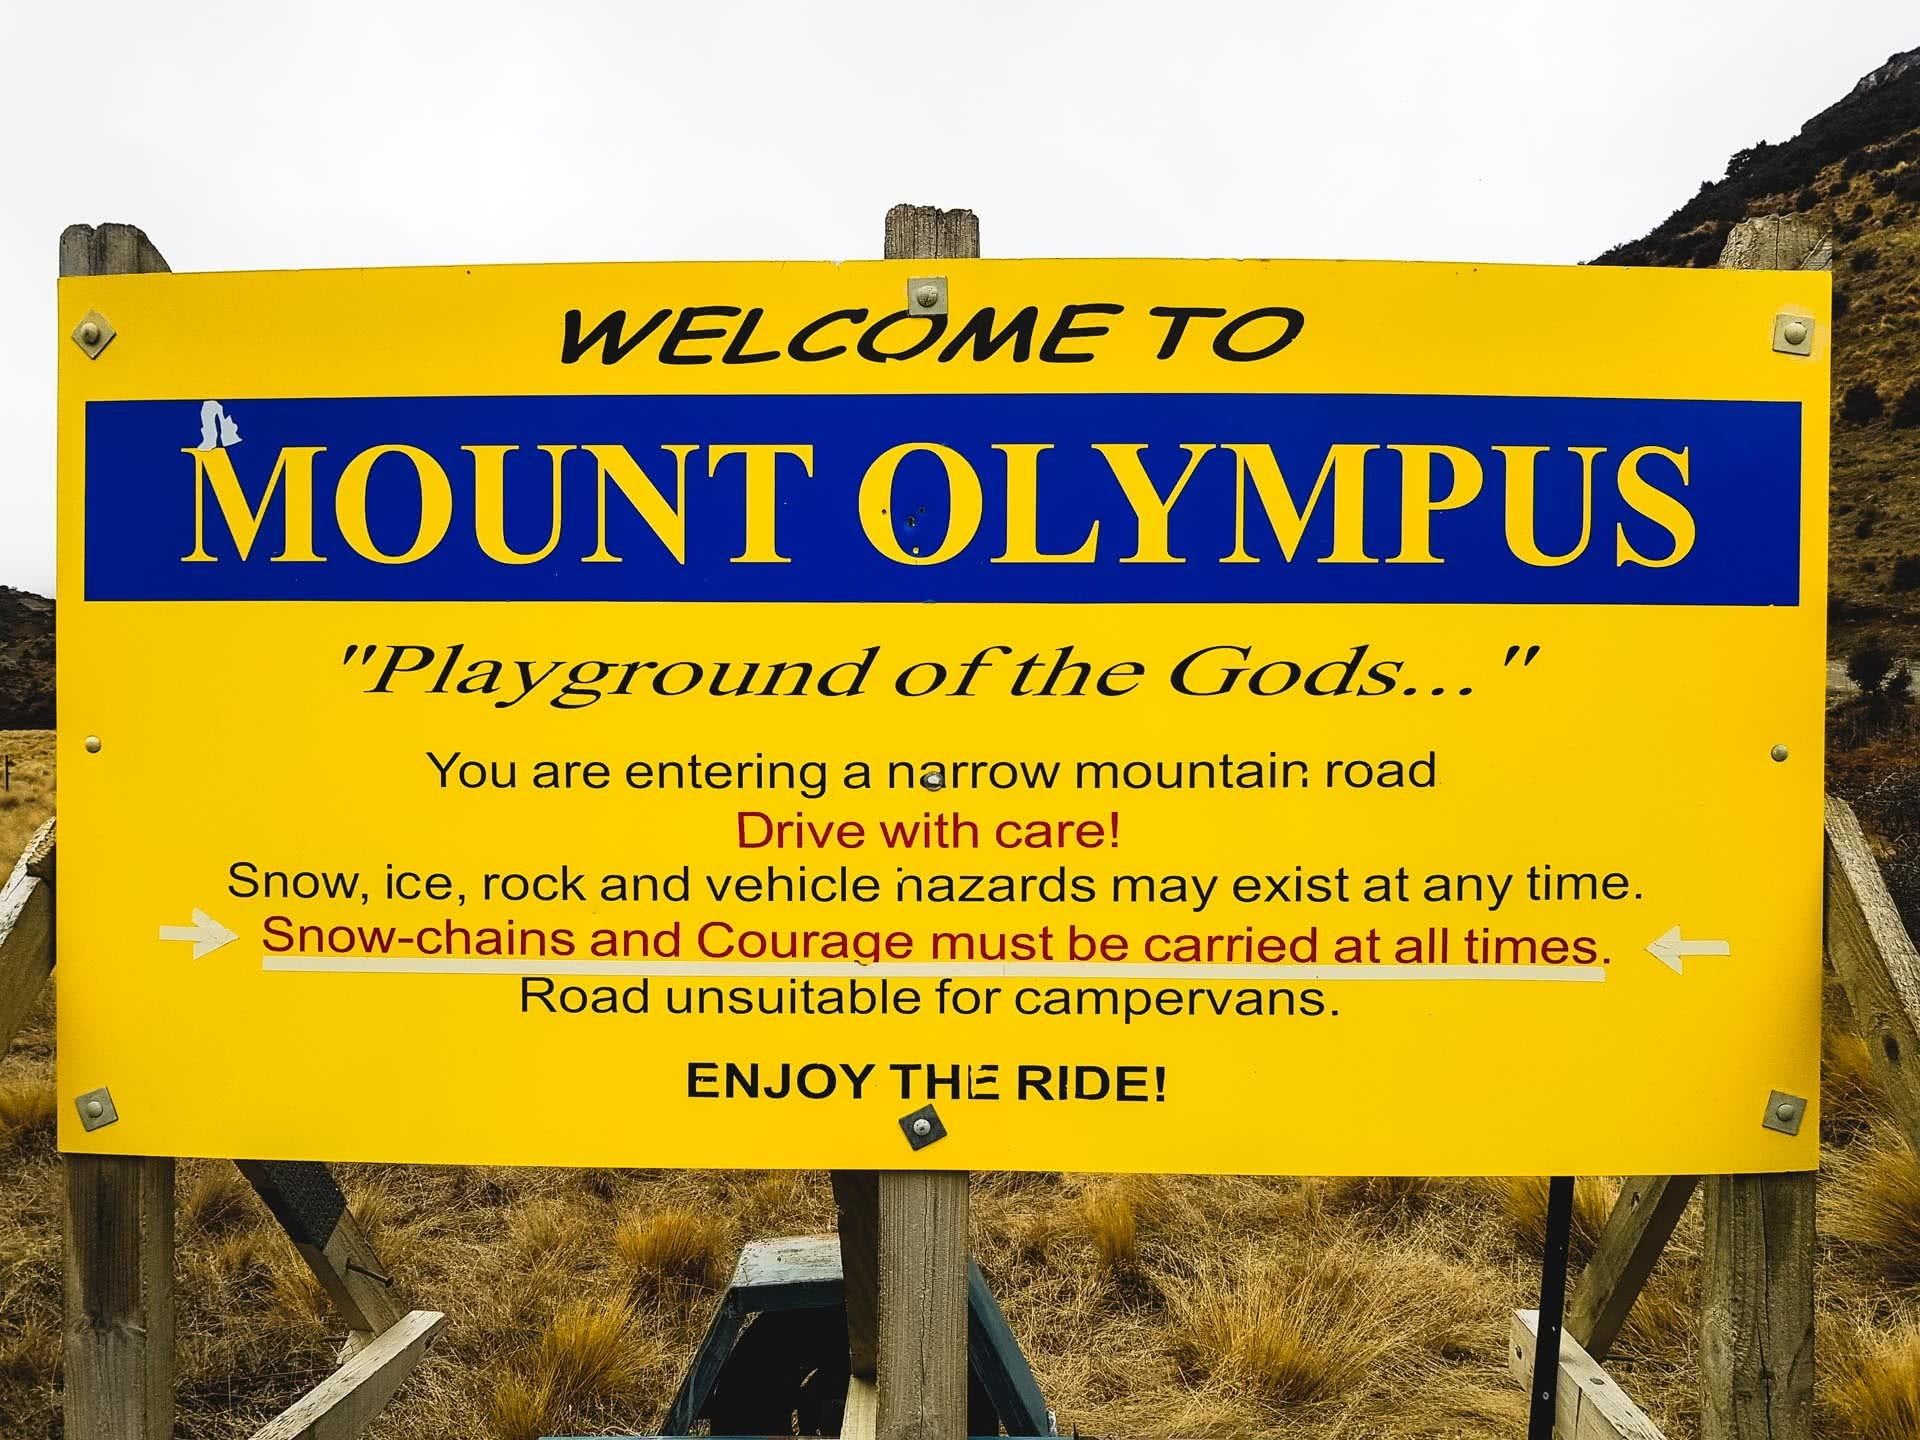 30 Snow-chains _ Courage should be carried at all times. Road sign en route to Mount Olympus, 24 Incredible Ski Fields & Resorts in New Zealand, Huw Kingston, New Zealand